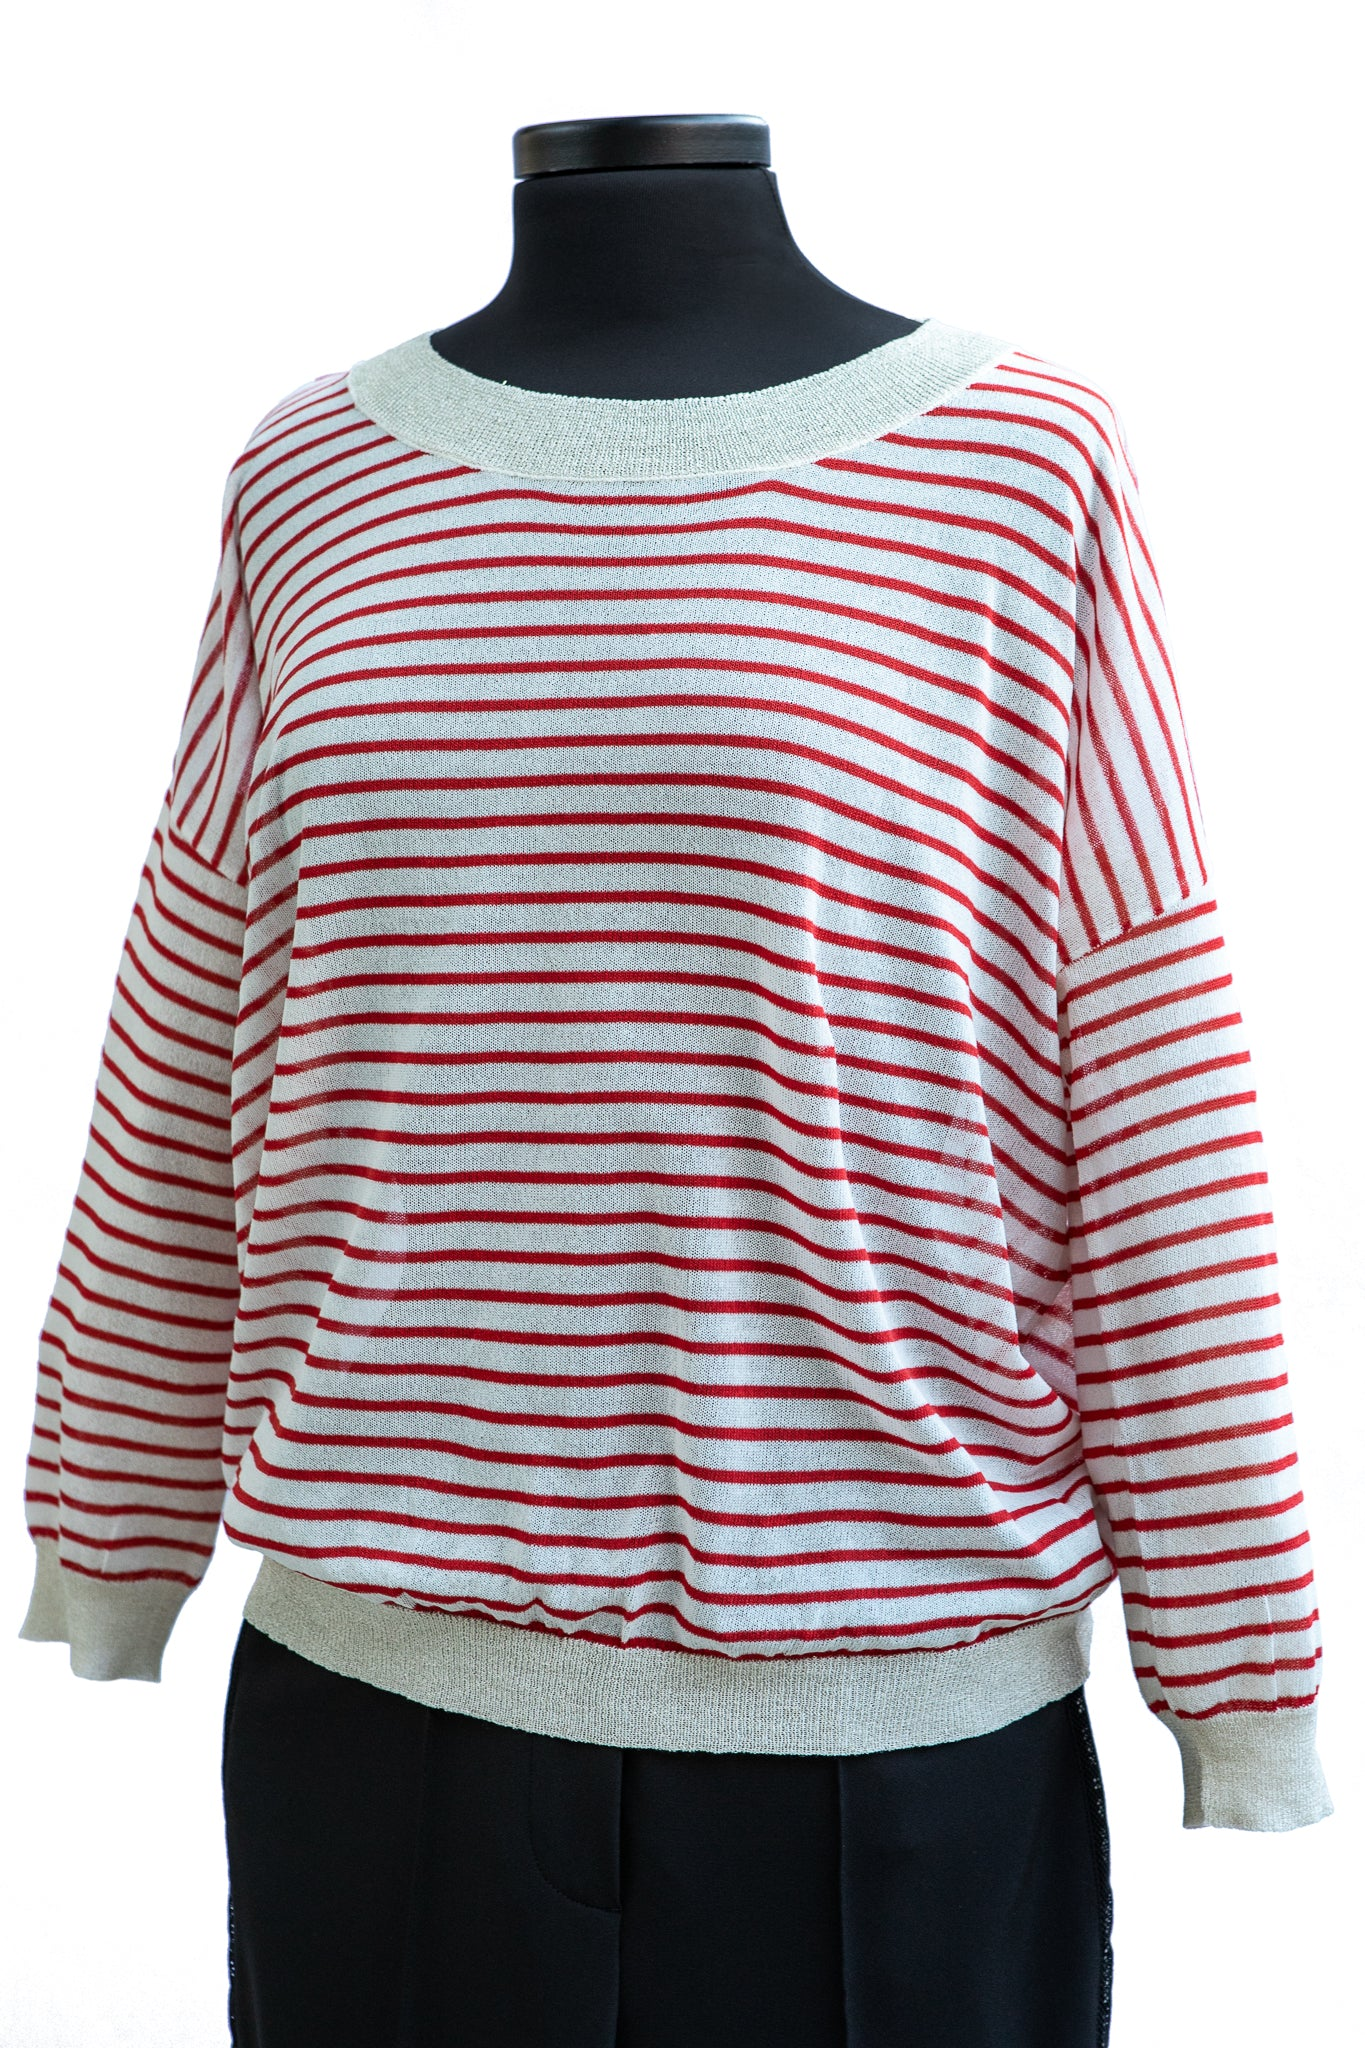 Molly Bracken Red Striped Sweater